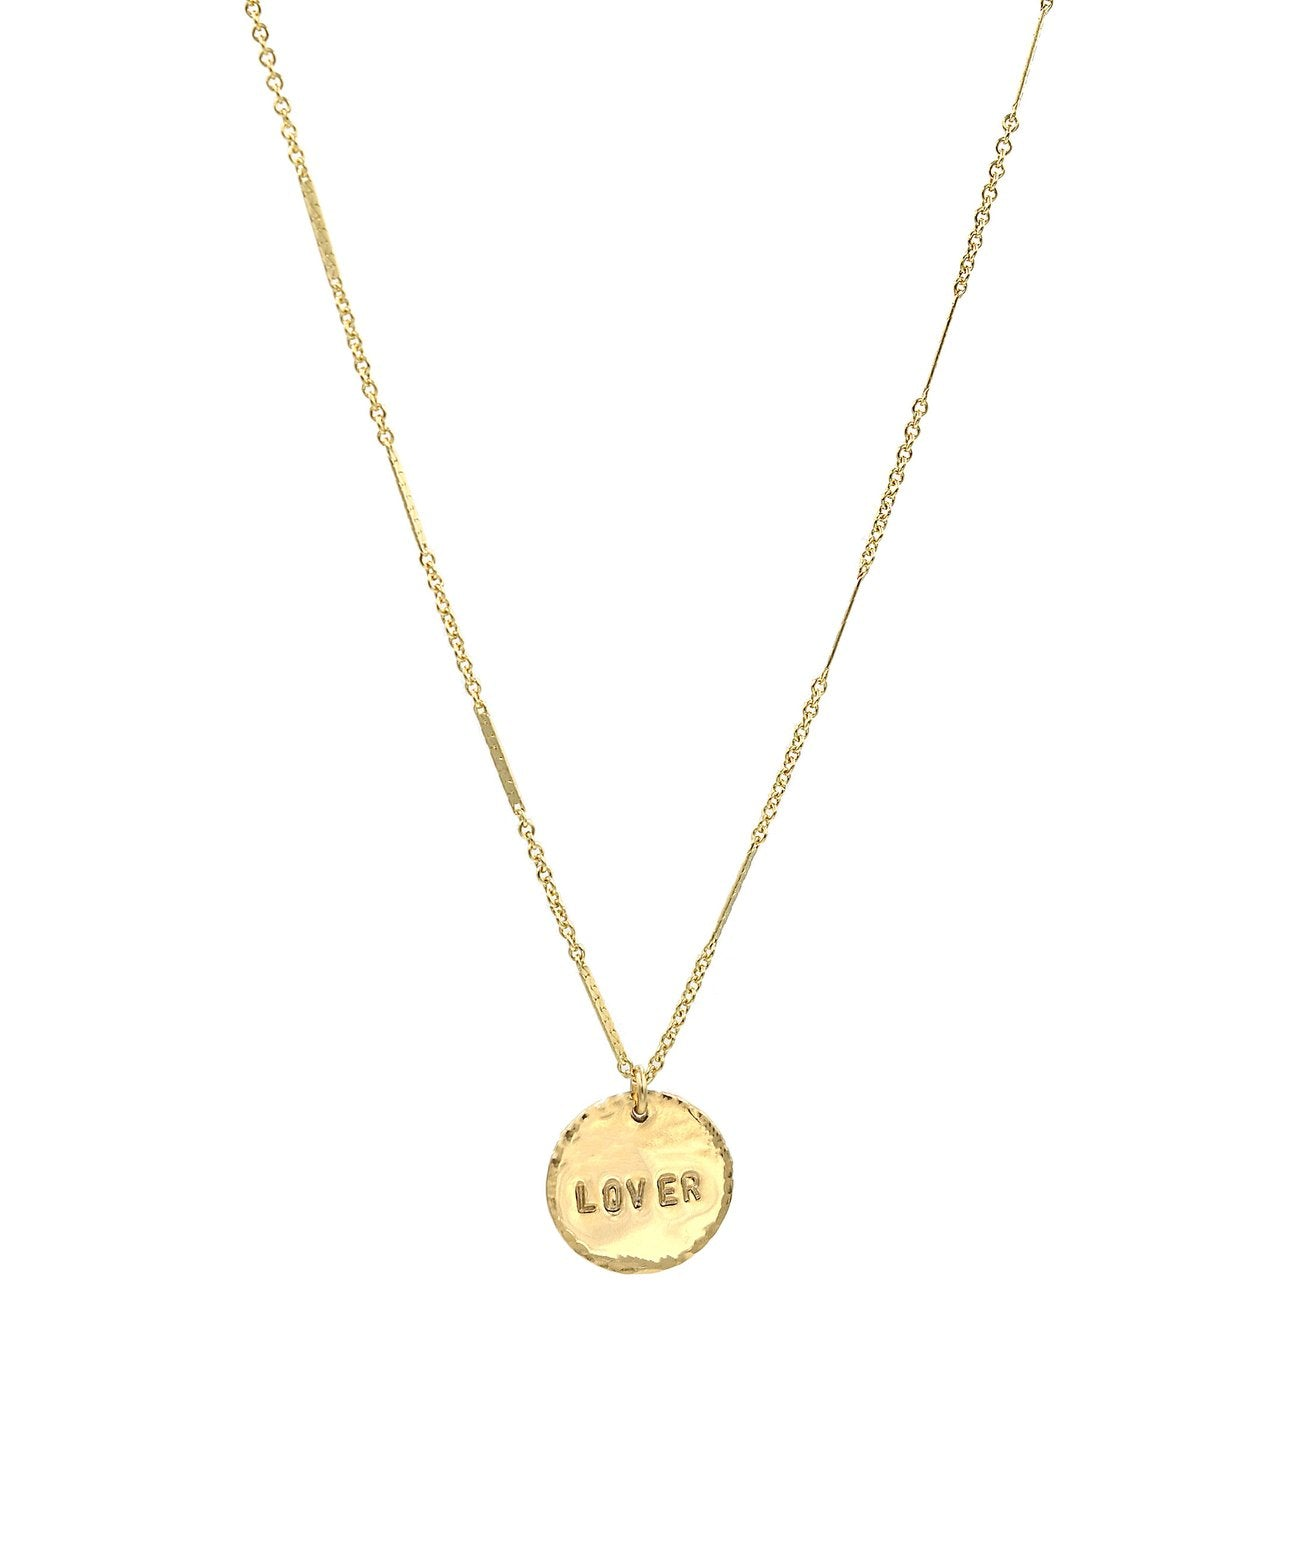 The Say It Coin Necklace in Lover